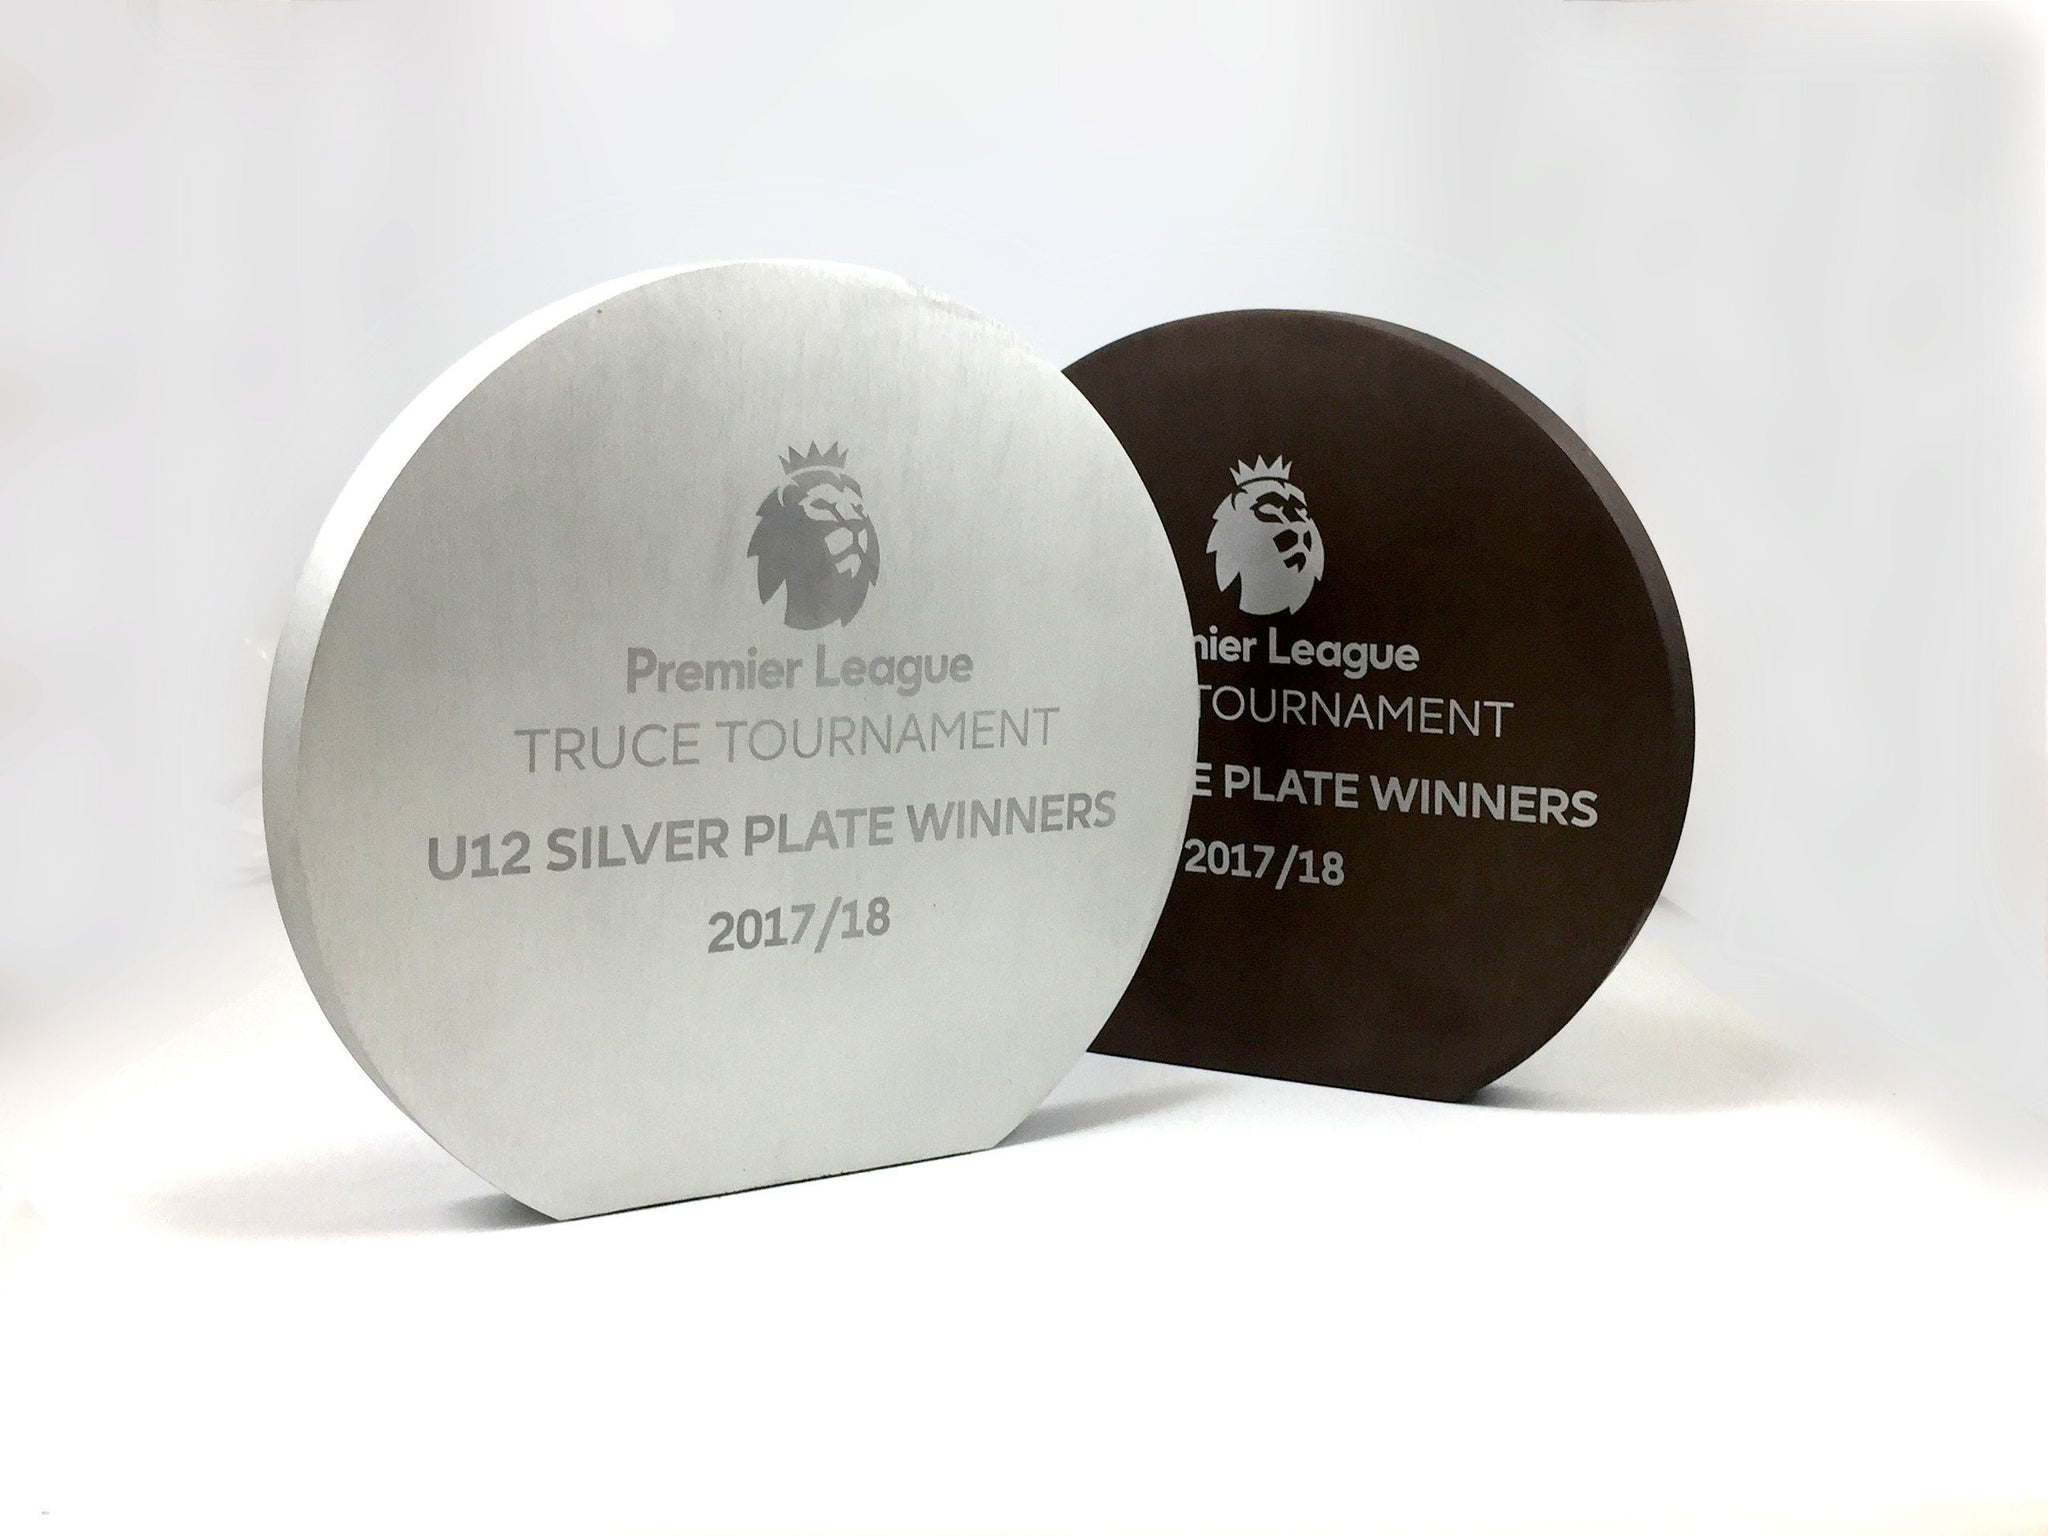 Premier League Bronze and Silver Discs Bespoke Metal Award Creative Awards